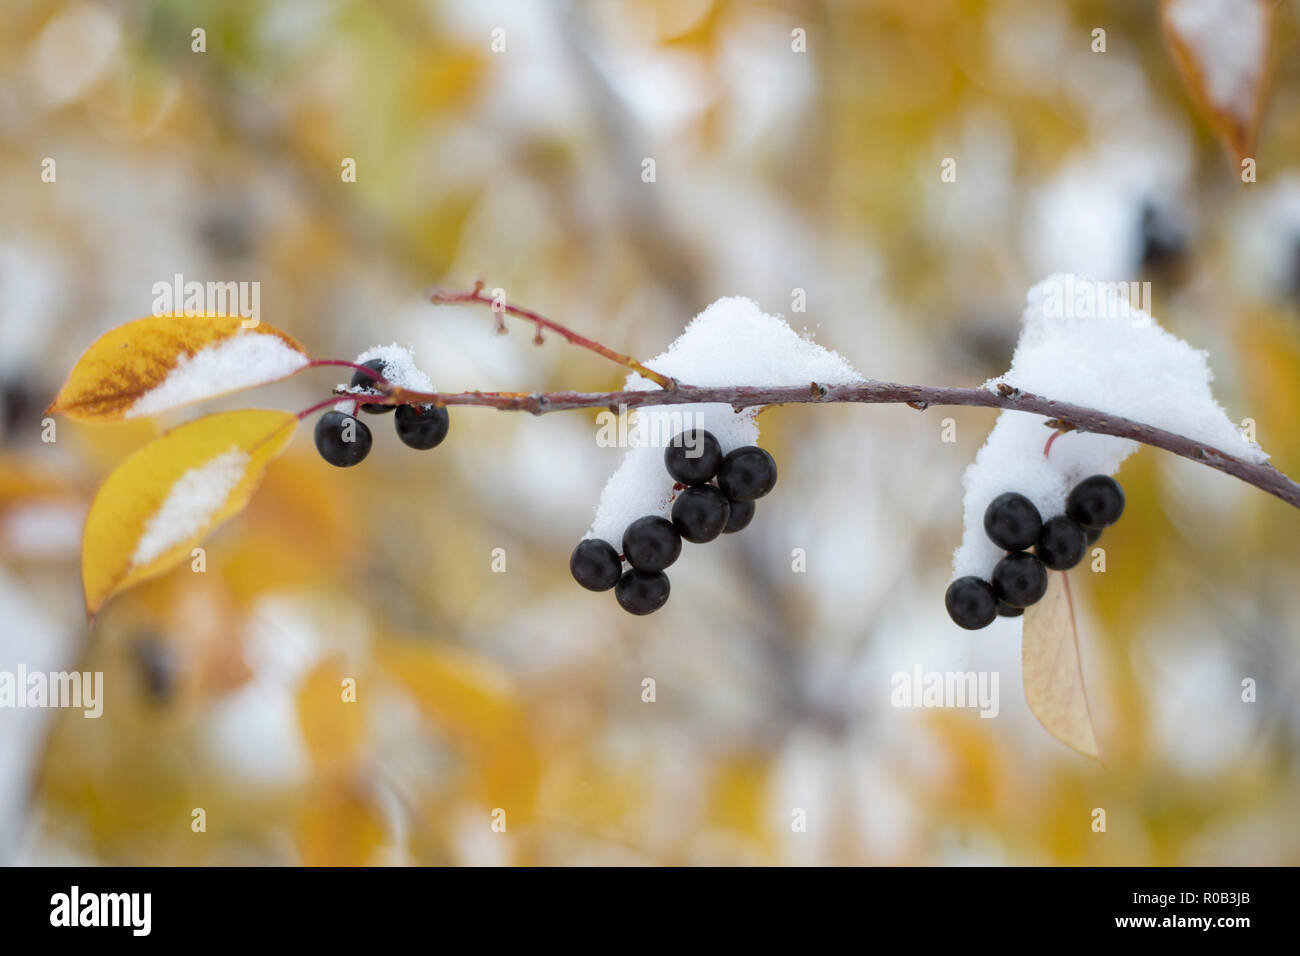 Choke cherry (Prunus virginiana) leaves in autumn color covered in snow after record breaking early snowfall at the beginning of October in Calgary. - Stock Image